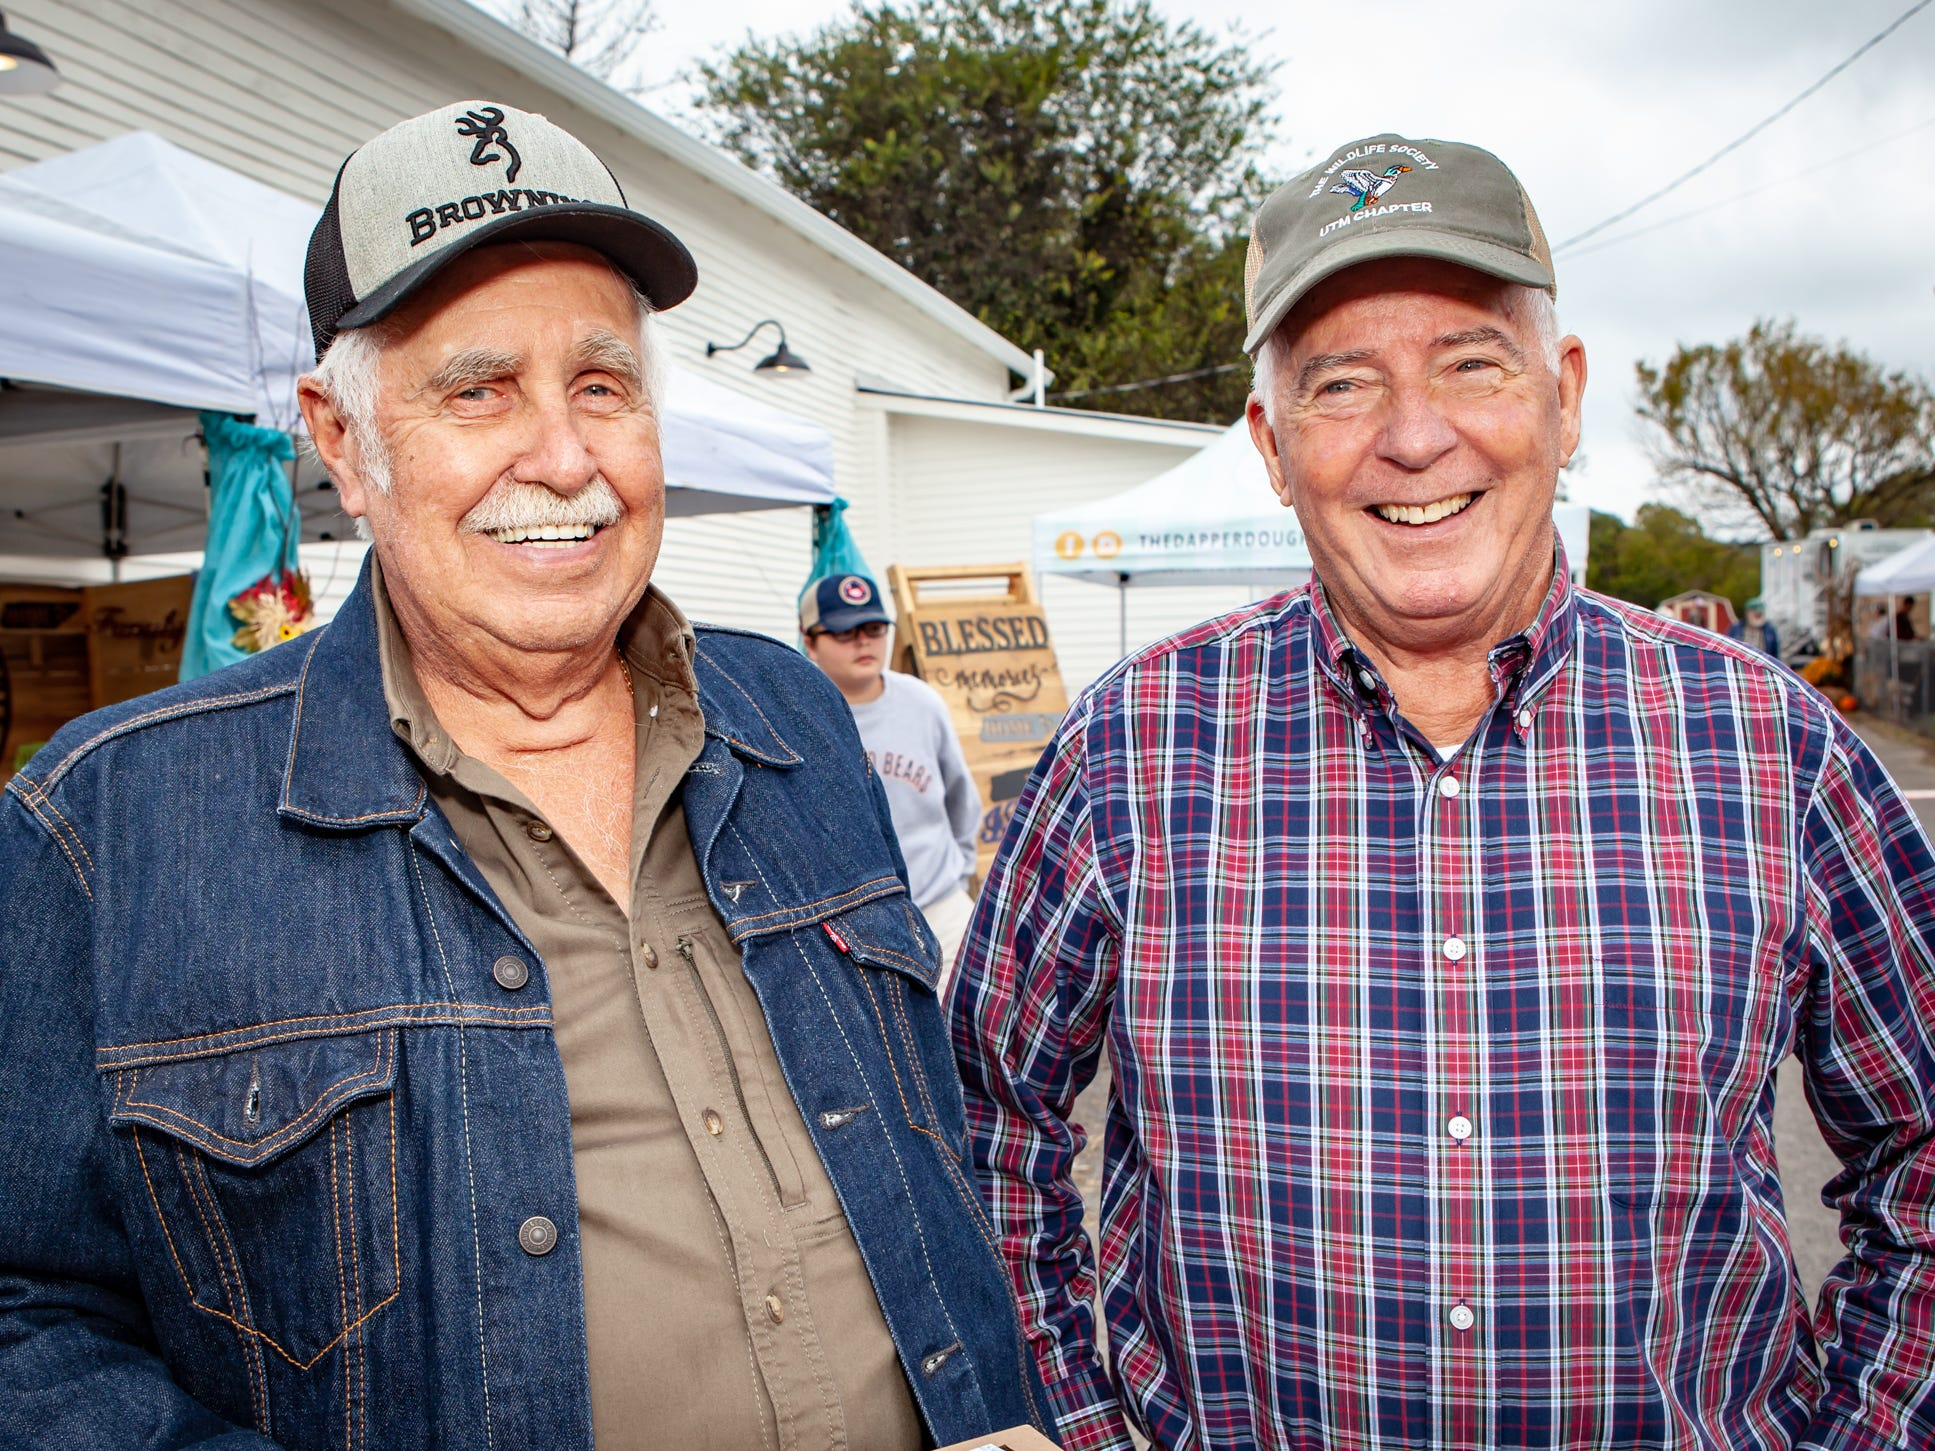 Larry McDonald and Ron Dowdy at The Gathering at Milton's fall market and craft fair on Saturday, Oct. 13, 2018.